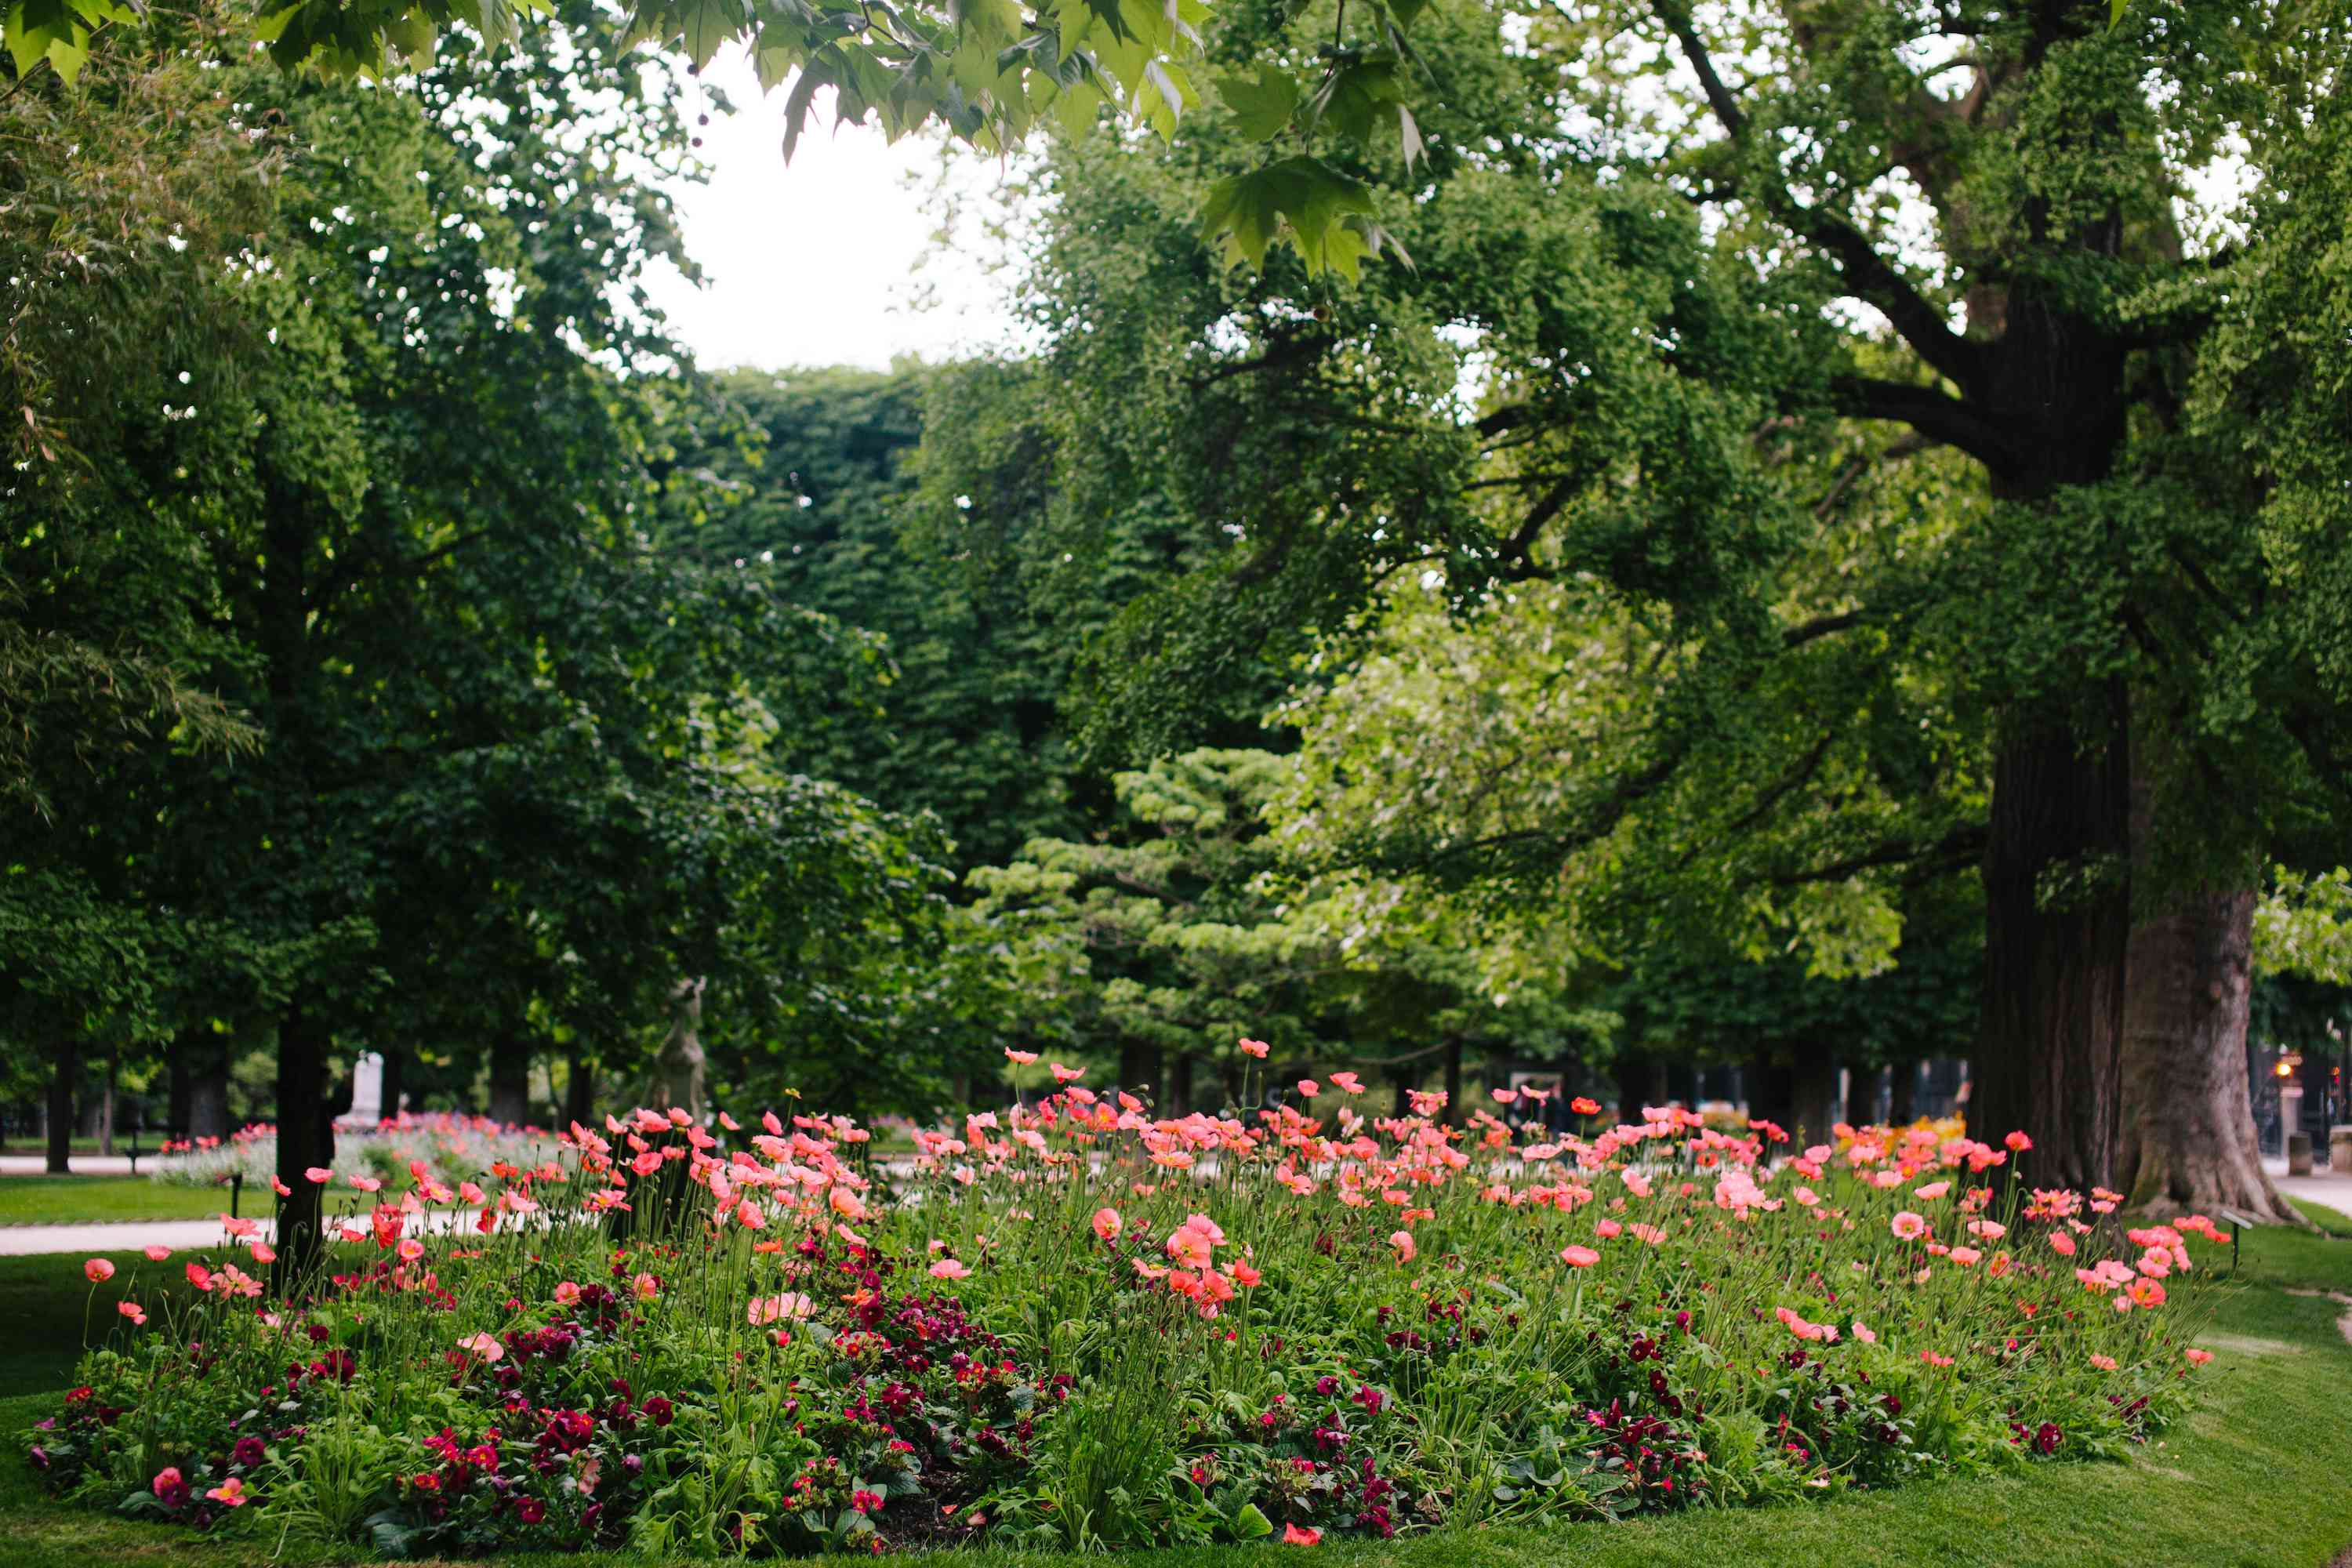 Flower bed in a park filled with pink flowers.